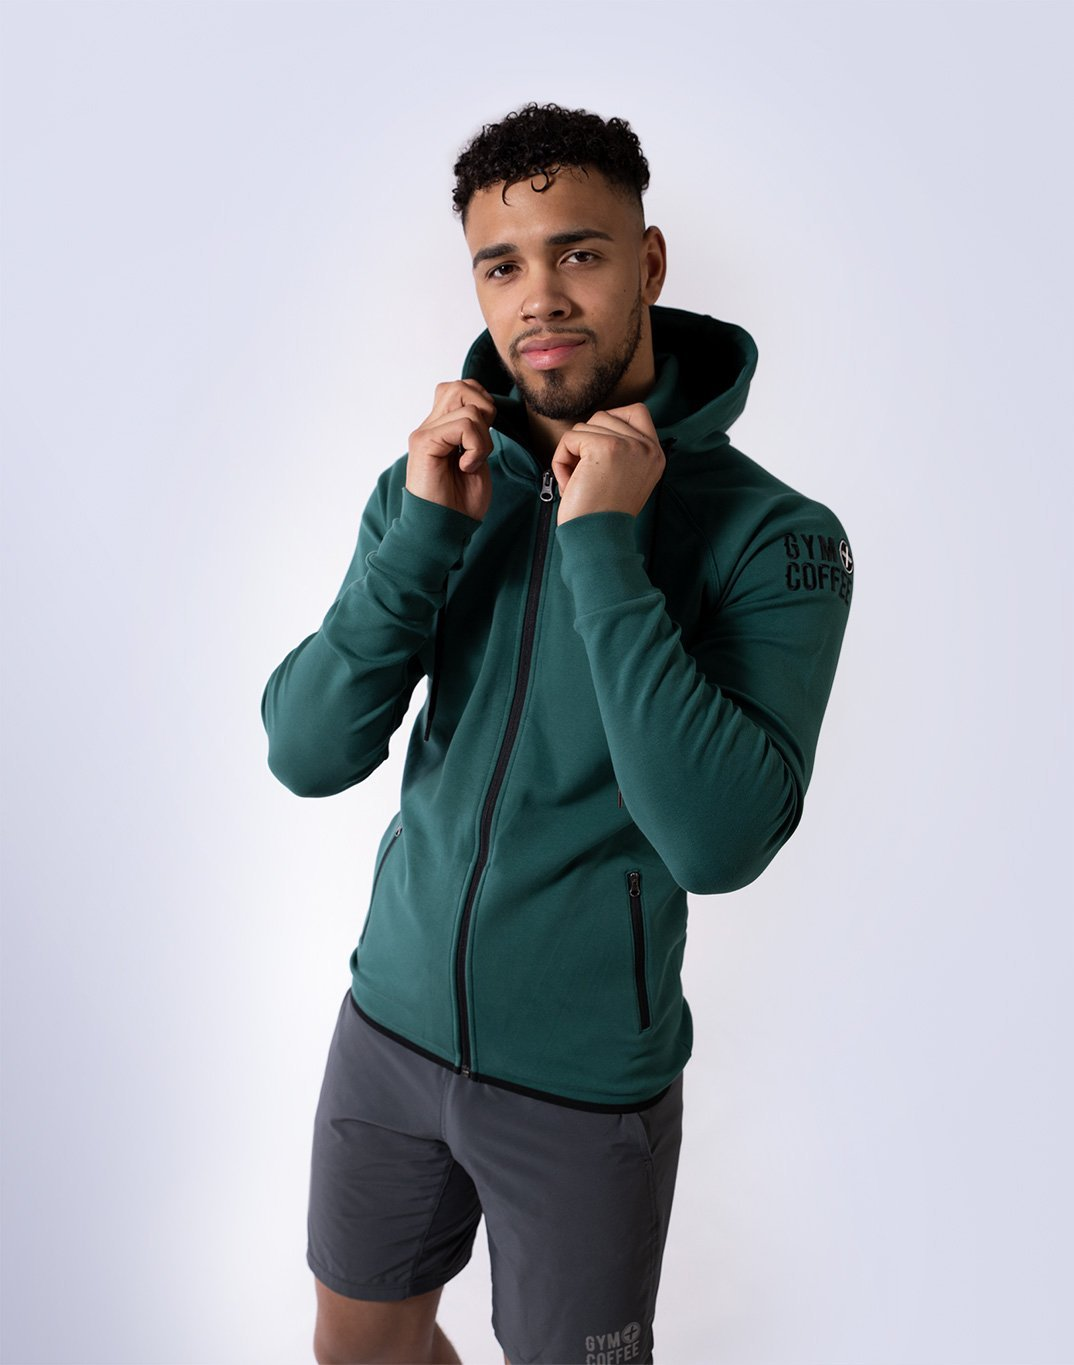 Gym Plus Coffee Hoodie Men's Chill Hoodie in Hunter Green Designed in Ireland